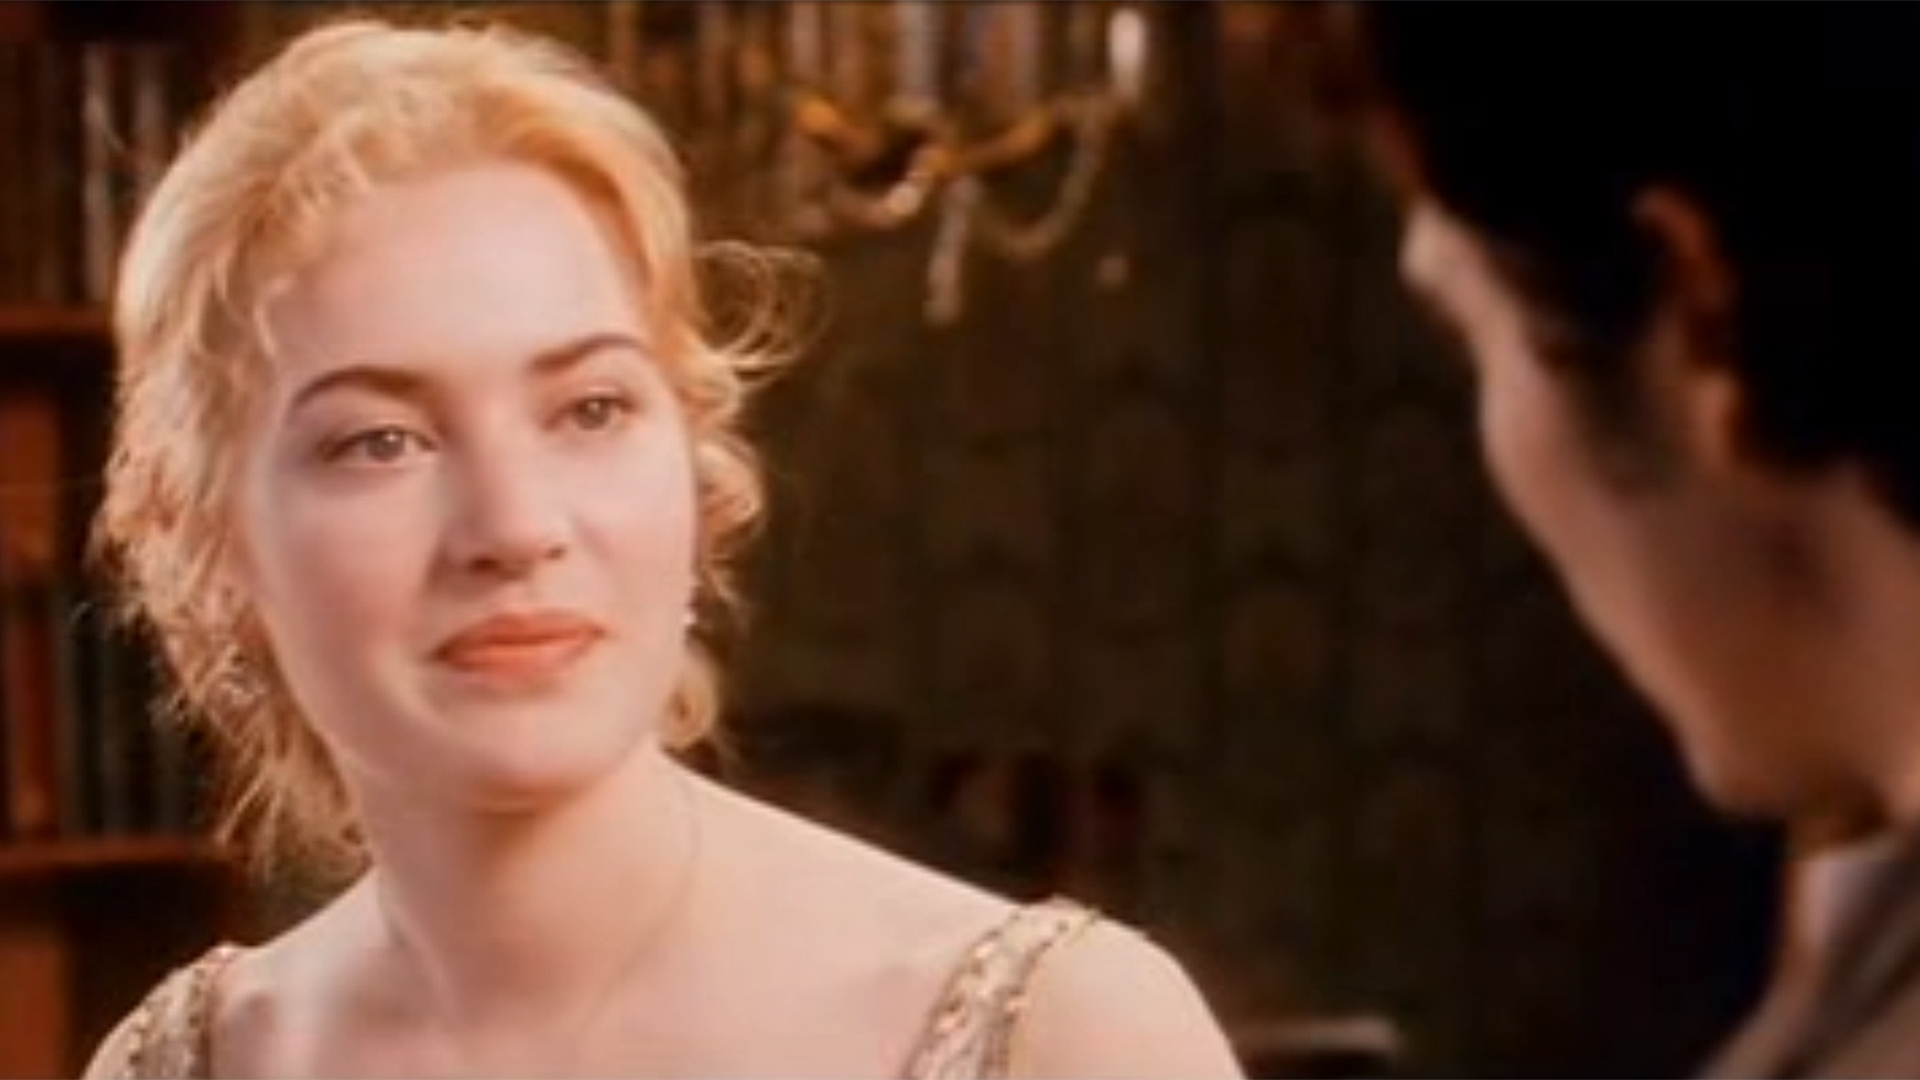 kate winslet's screen test for 'titanic' is magic. but who plays